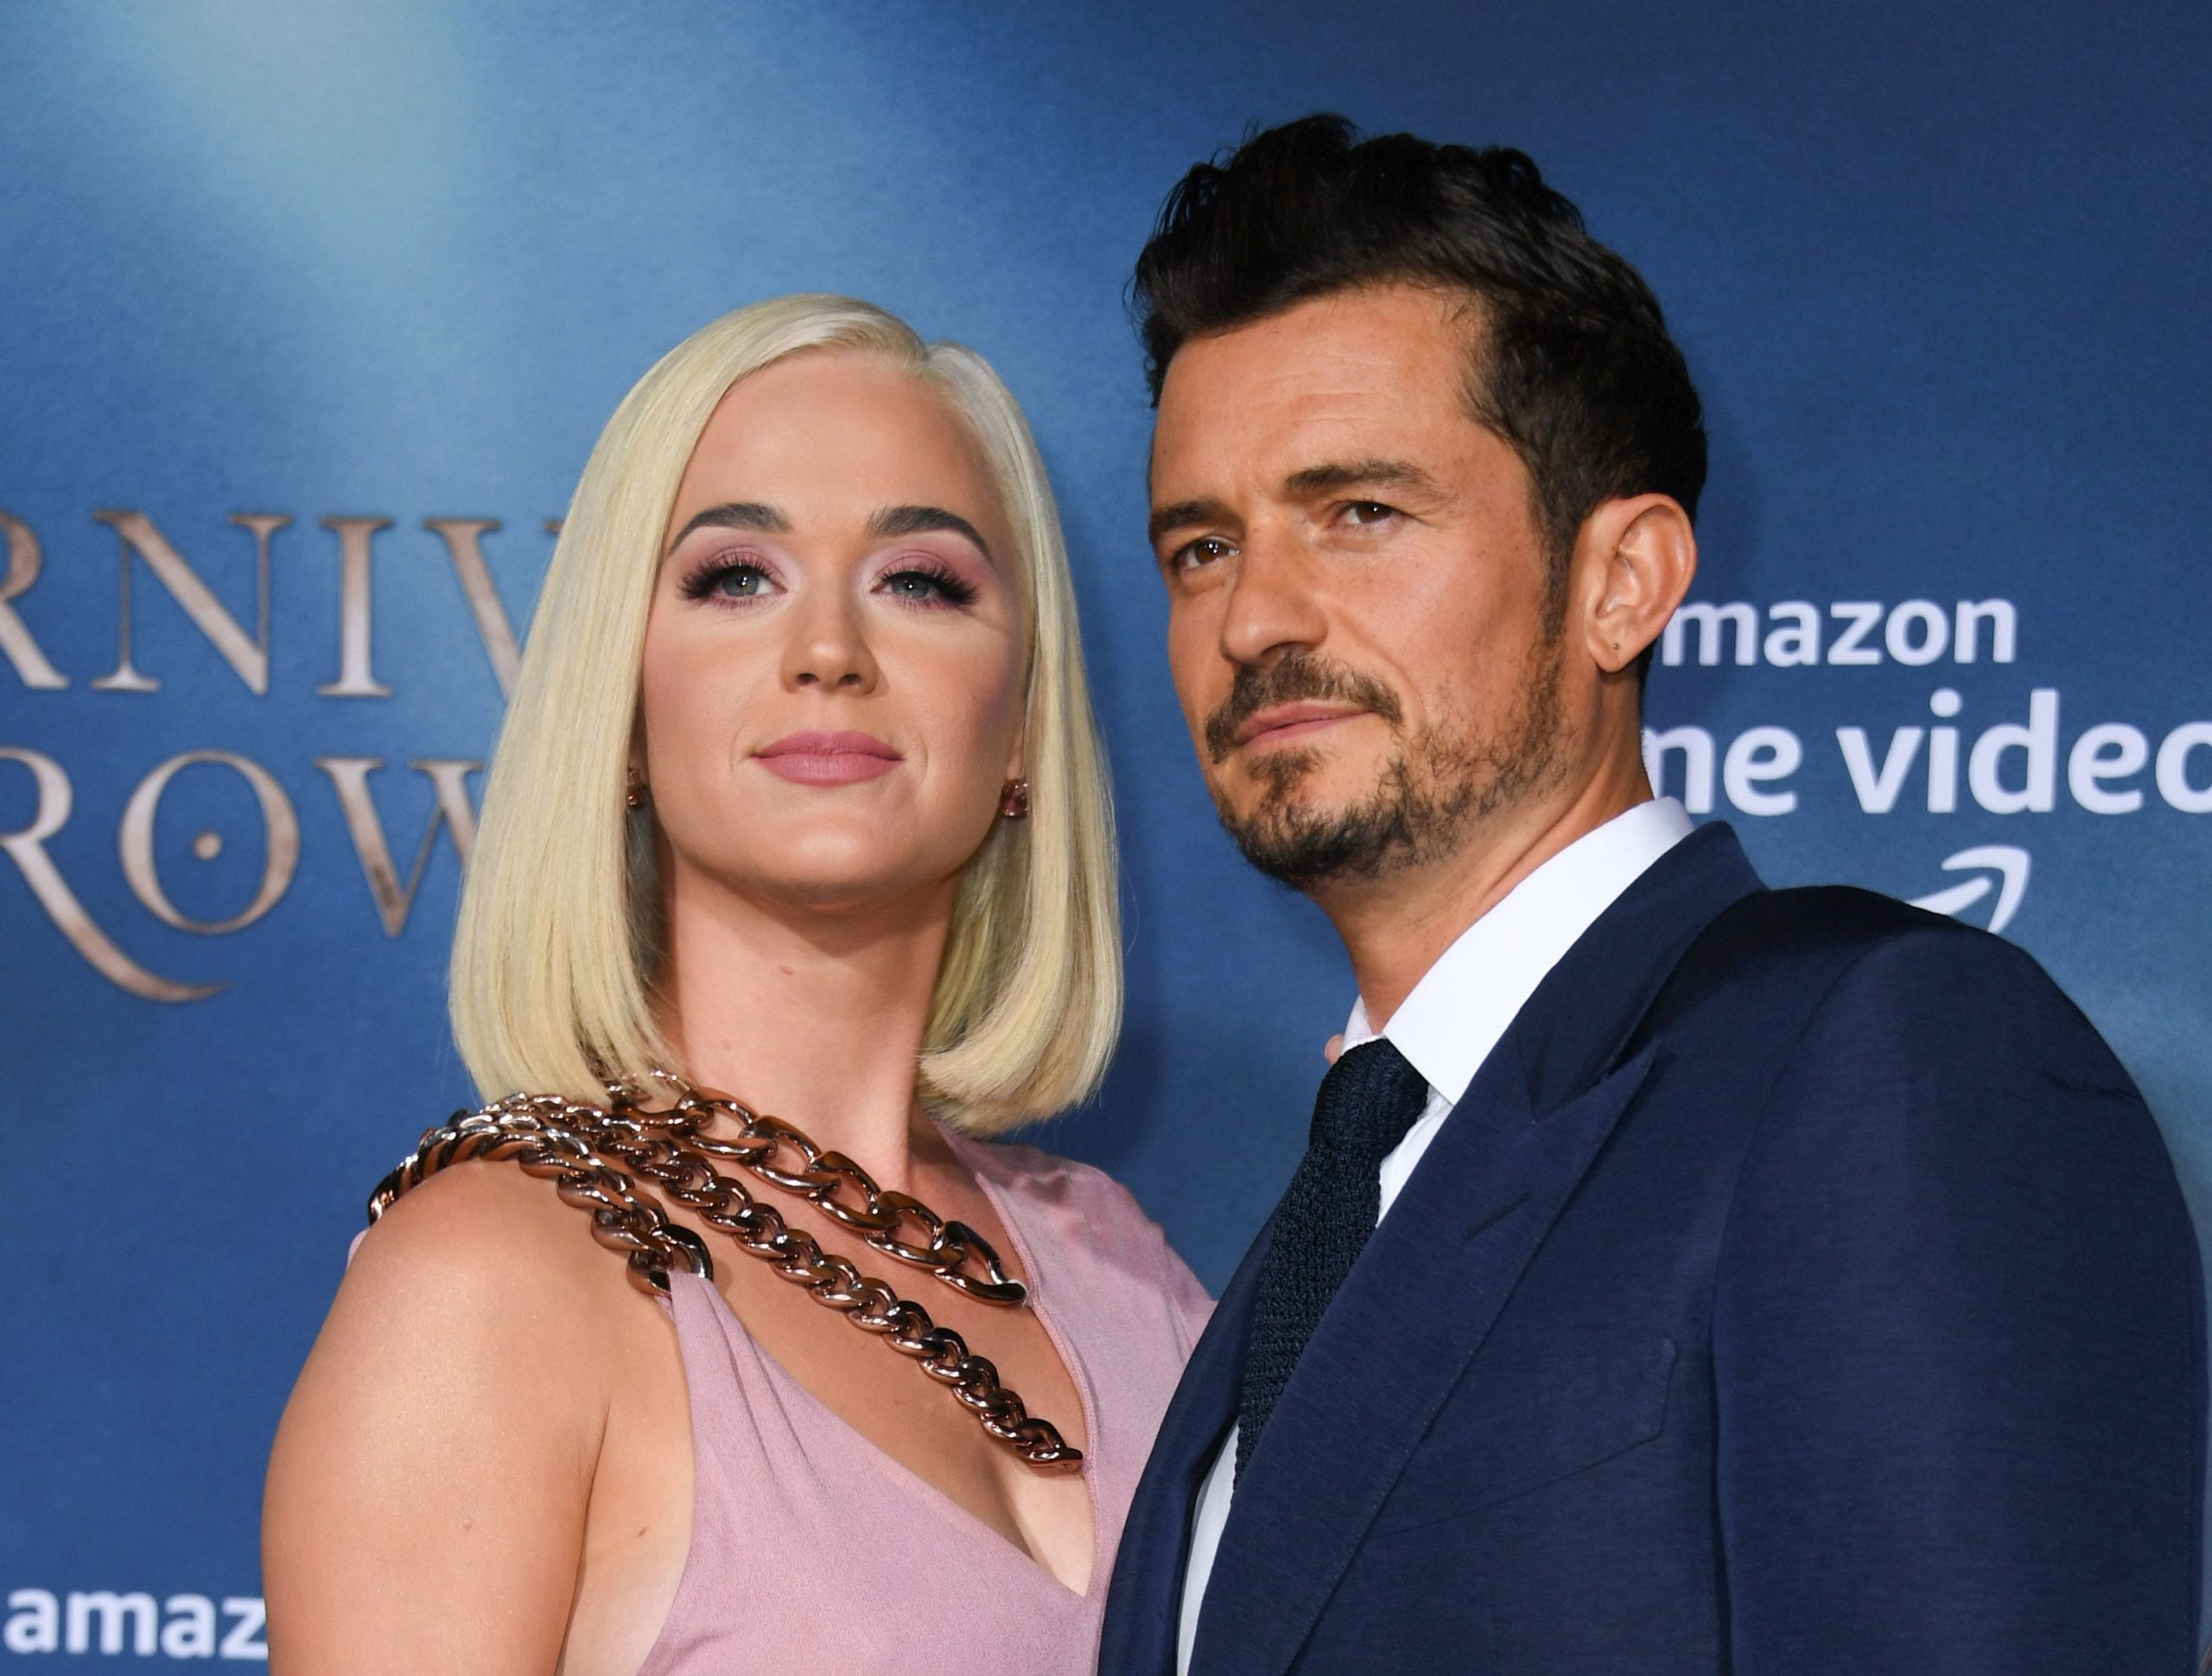 whois katy perry dating?